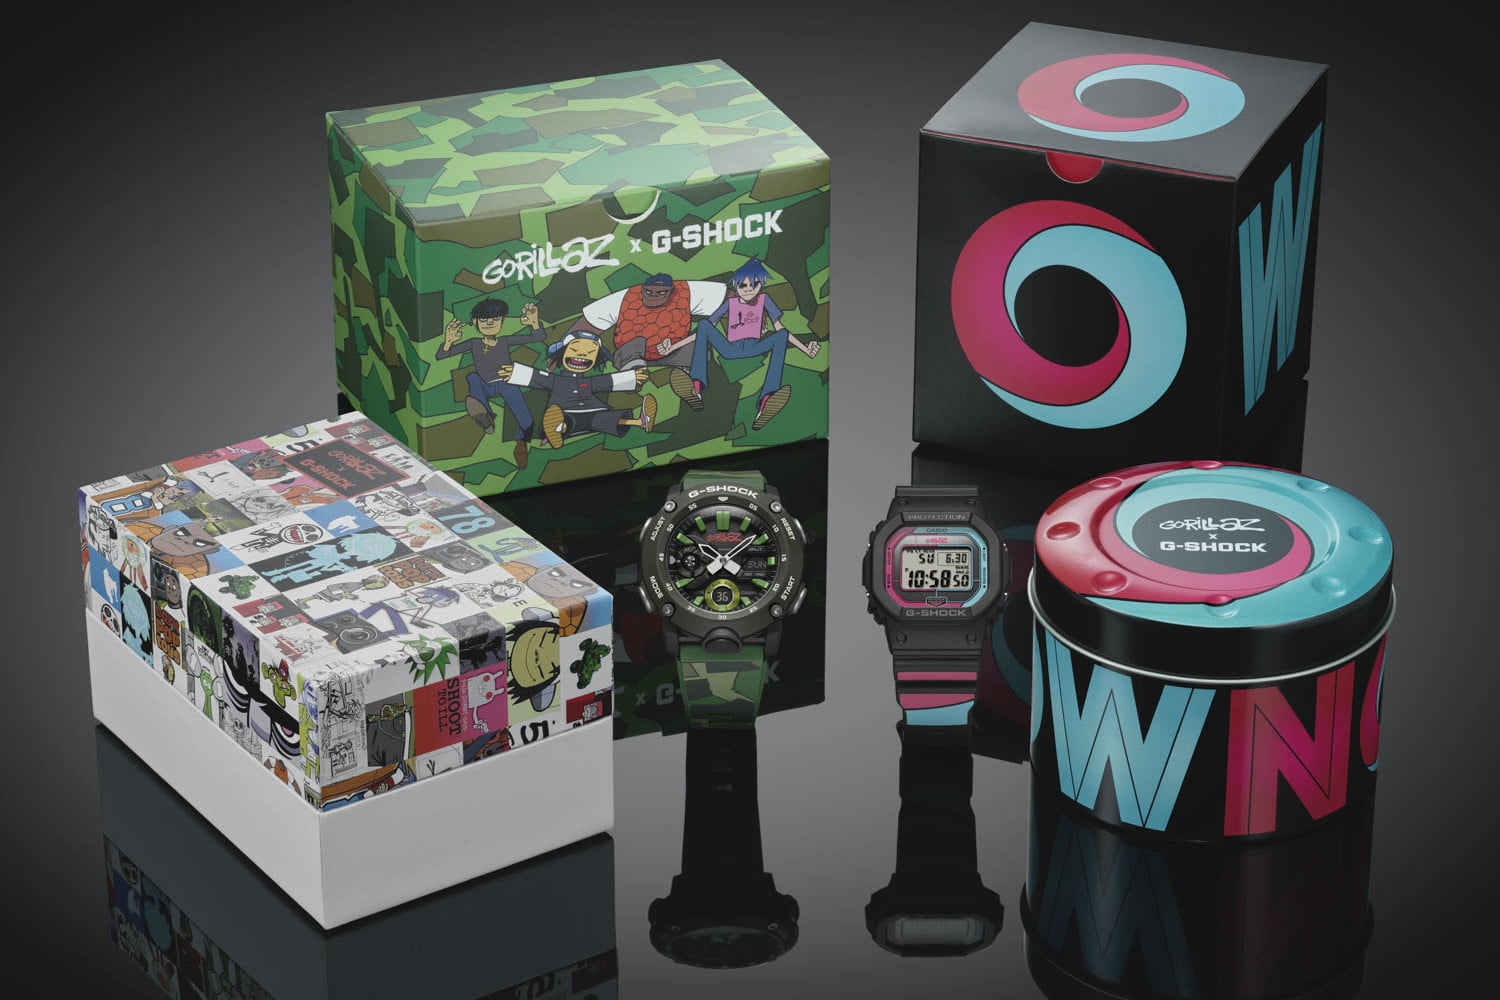 Awesome new Gorillaz and G-Shock limited-edition watch gets Bluetooth tech twist